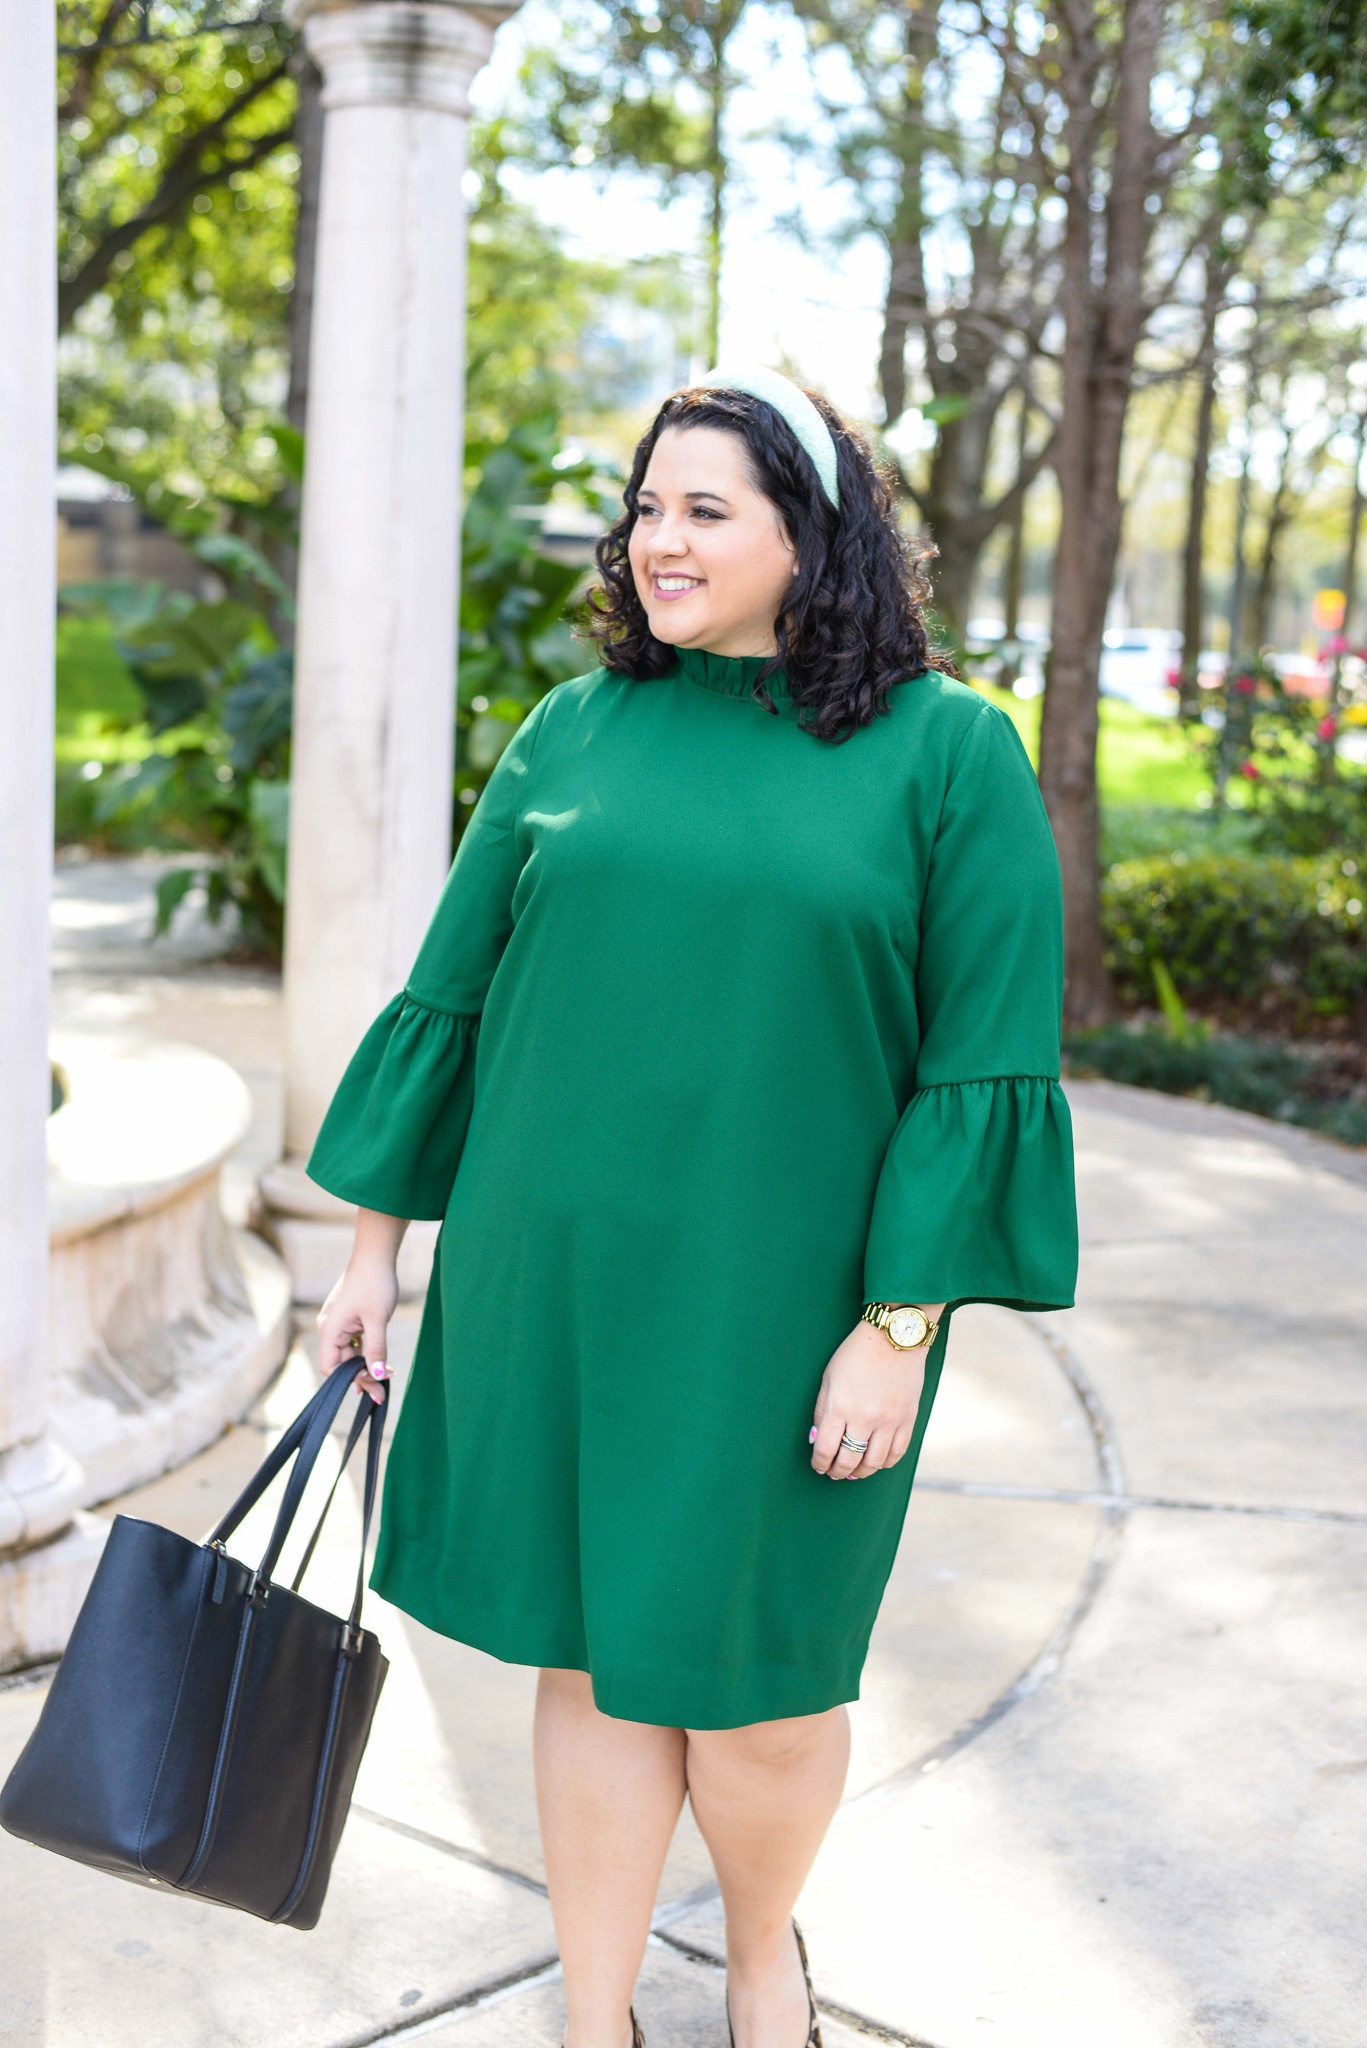 What to wear to the office for St. Patrick's Day